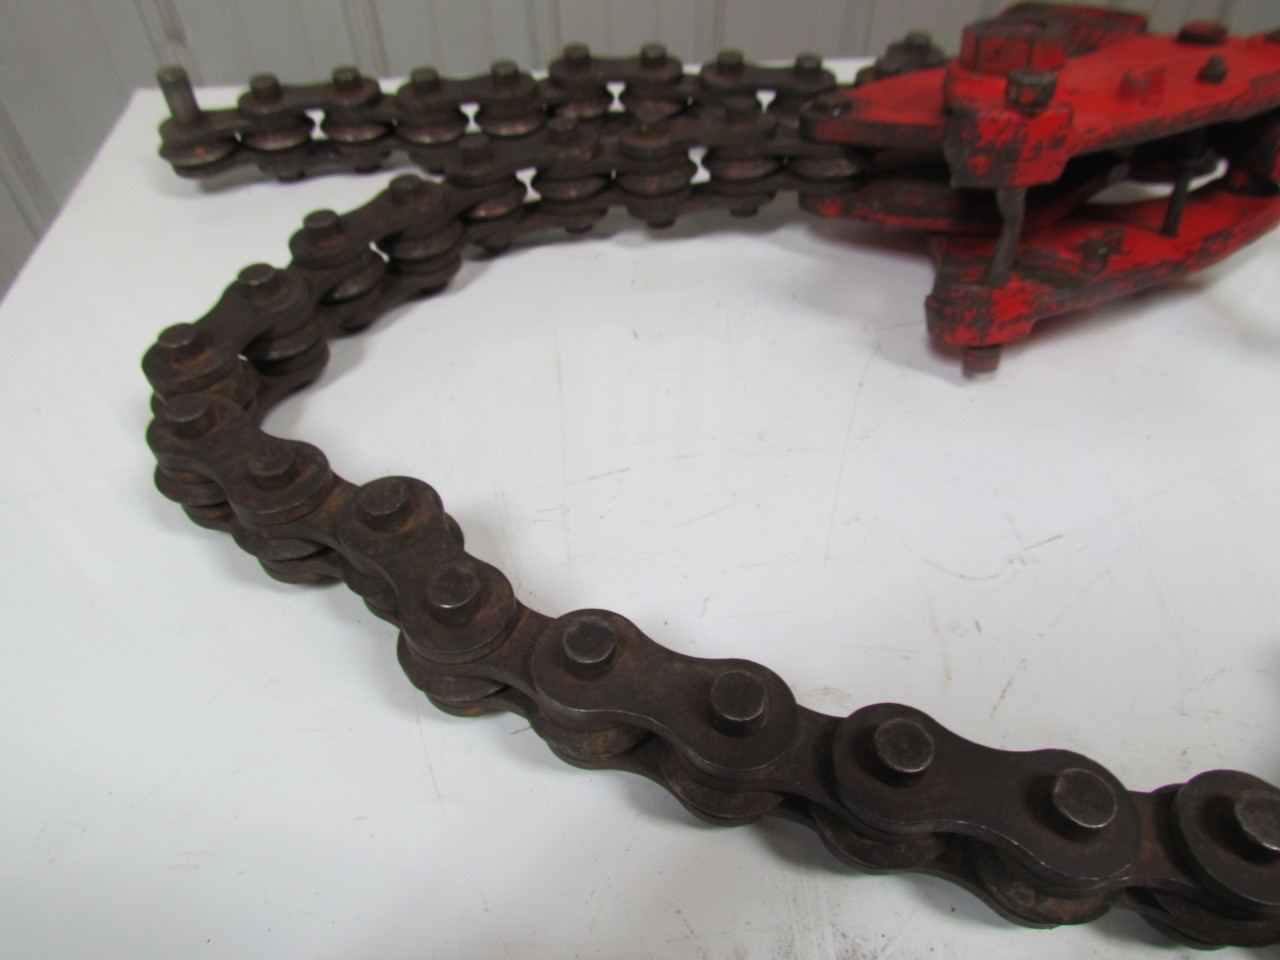 Hydraulic Pipe Cutters : Wheeler rex hydraulic pipe cracker cutter for cast